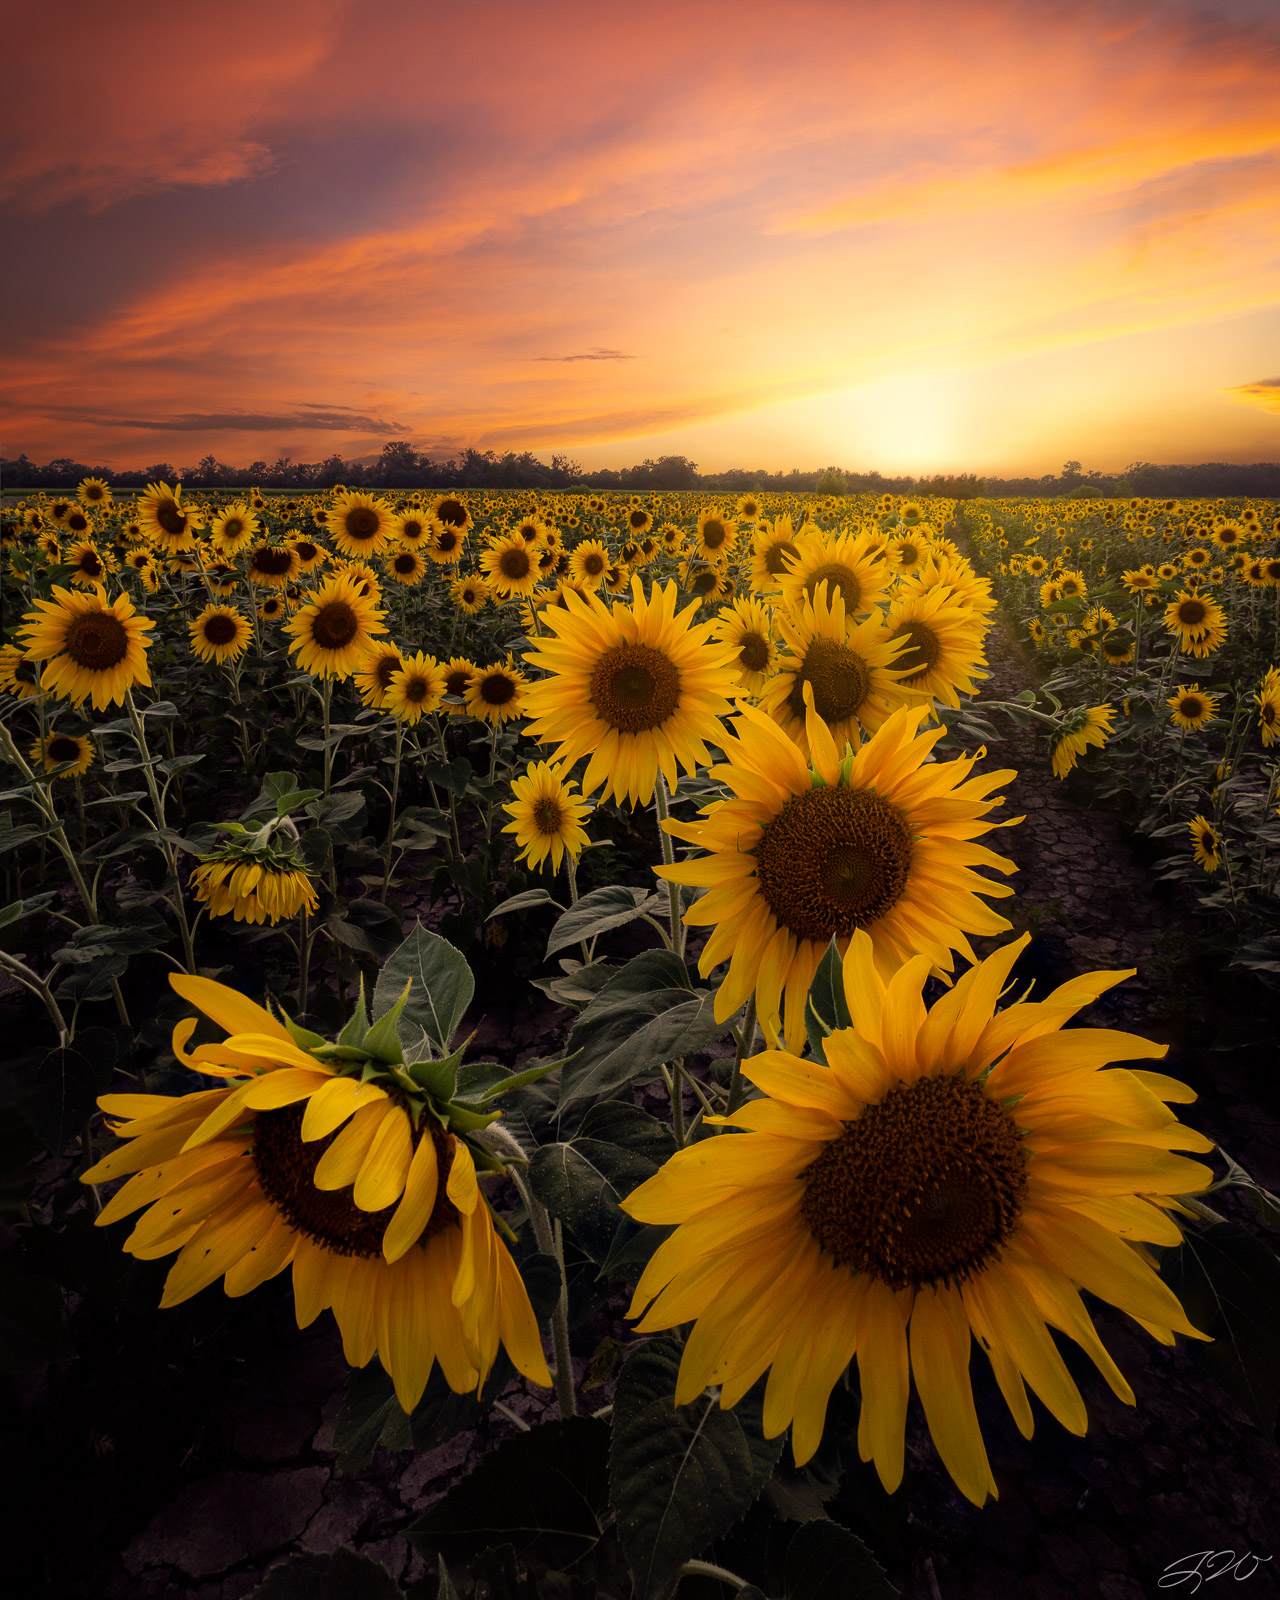 Fine Art Limited Edition of 100. A sunflower field is like a sky with a thousand suns. I found myself in this massive field of...